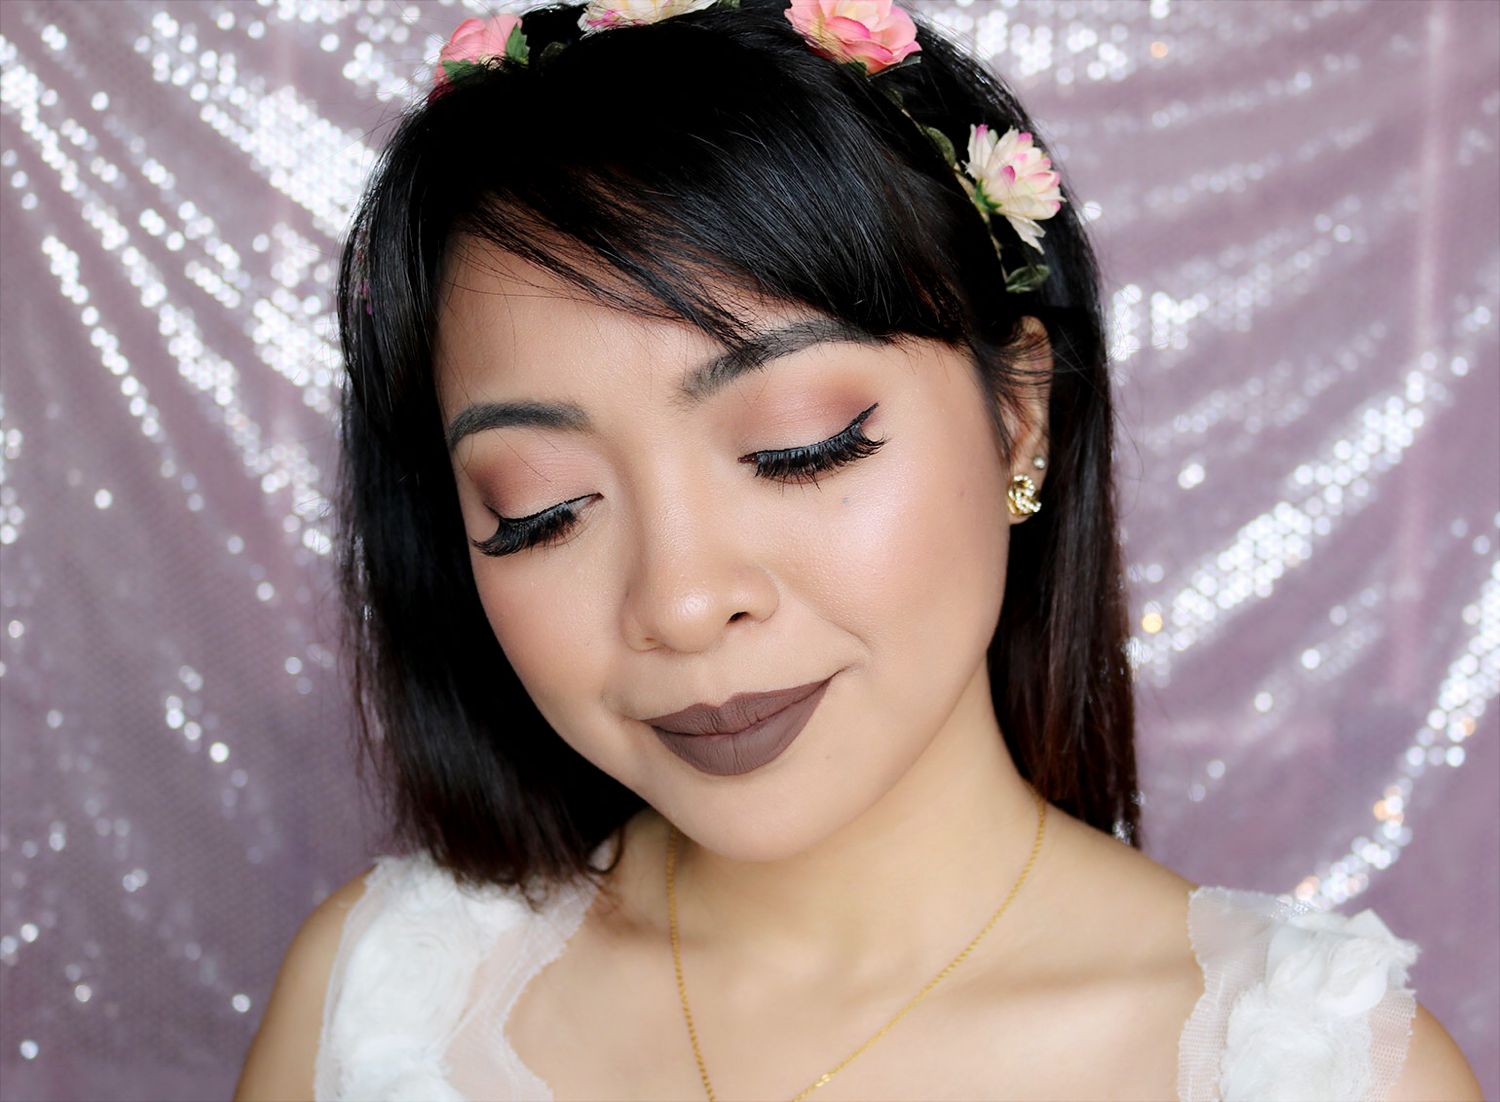 5 Cathy Doll Nude Me Liquid Lip Matte Review Swatches - True Brown - Gen-zel She Sings Beauty